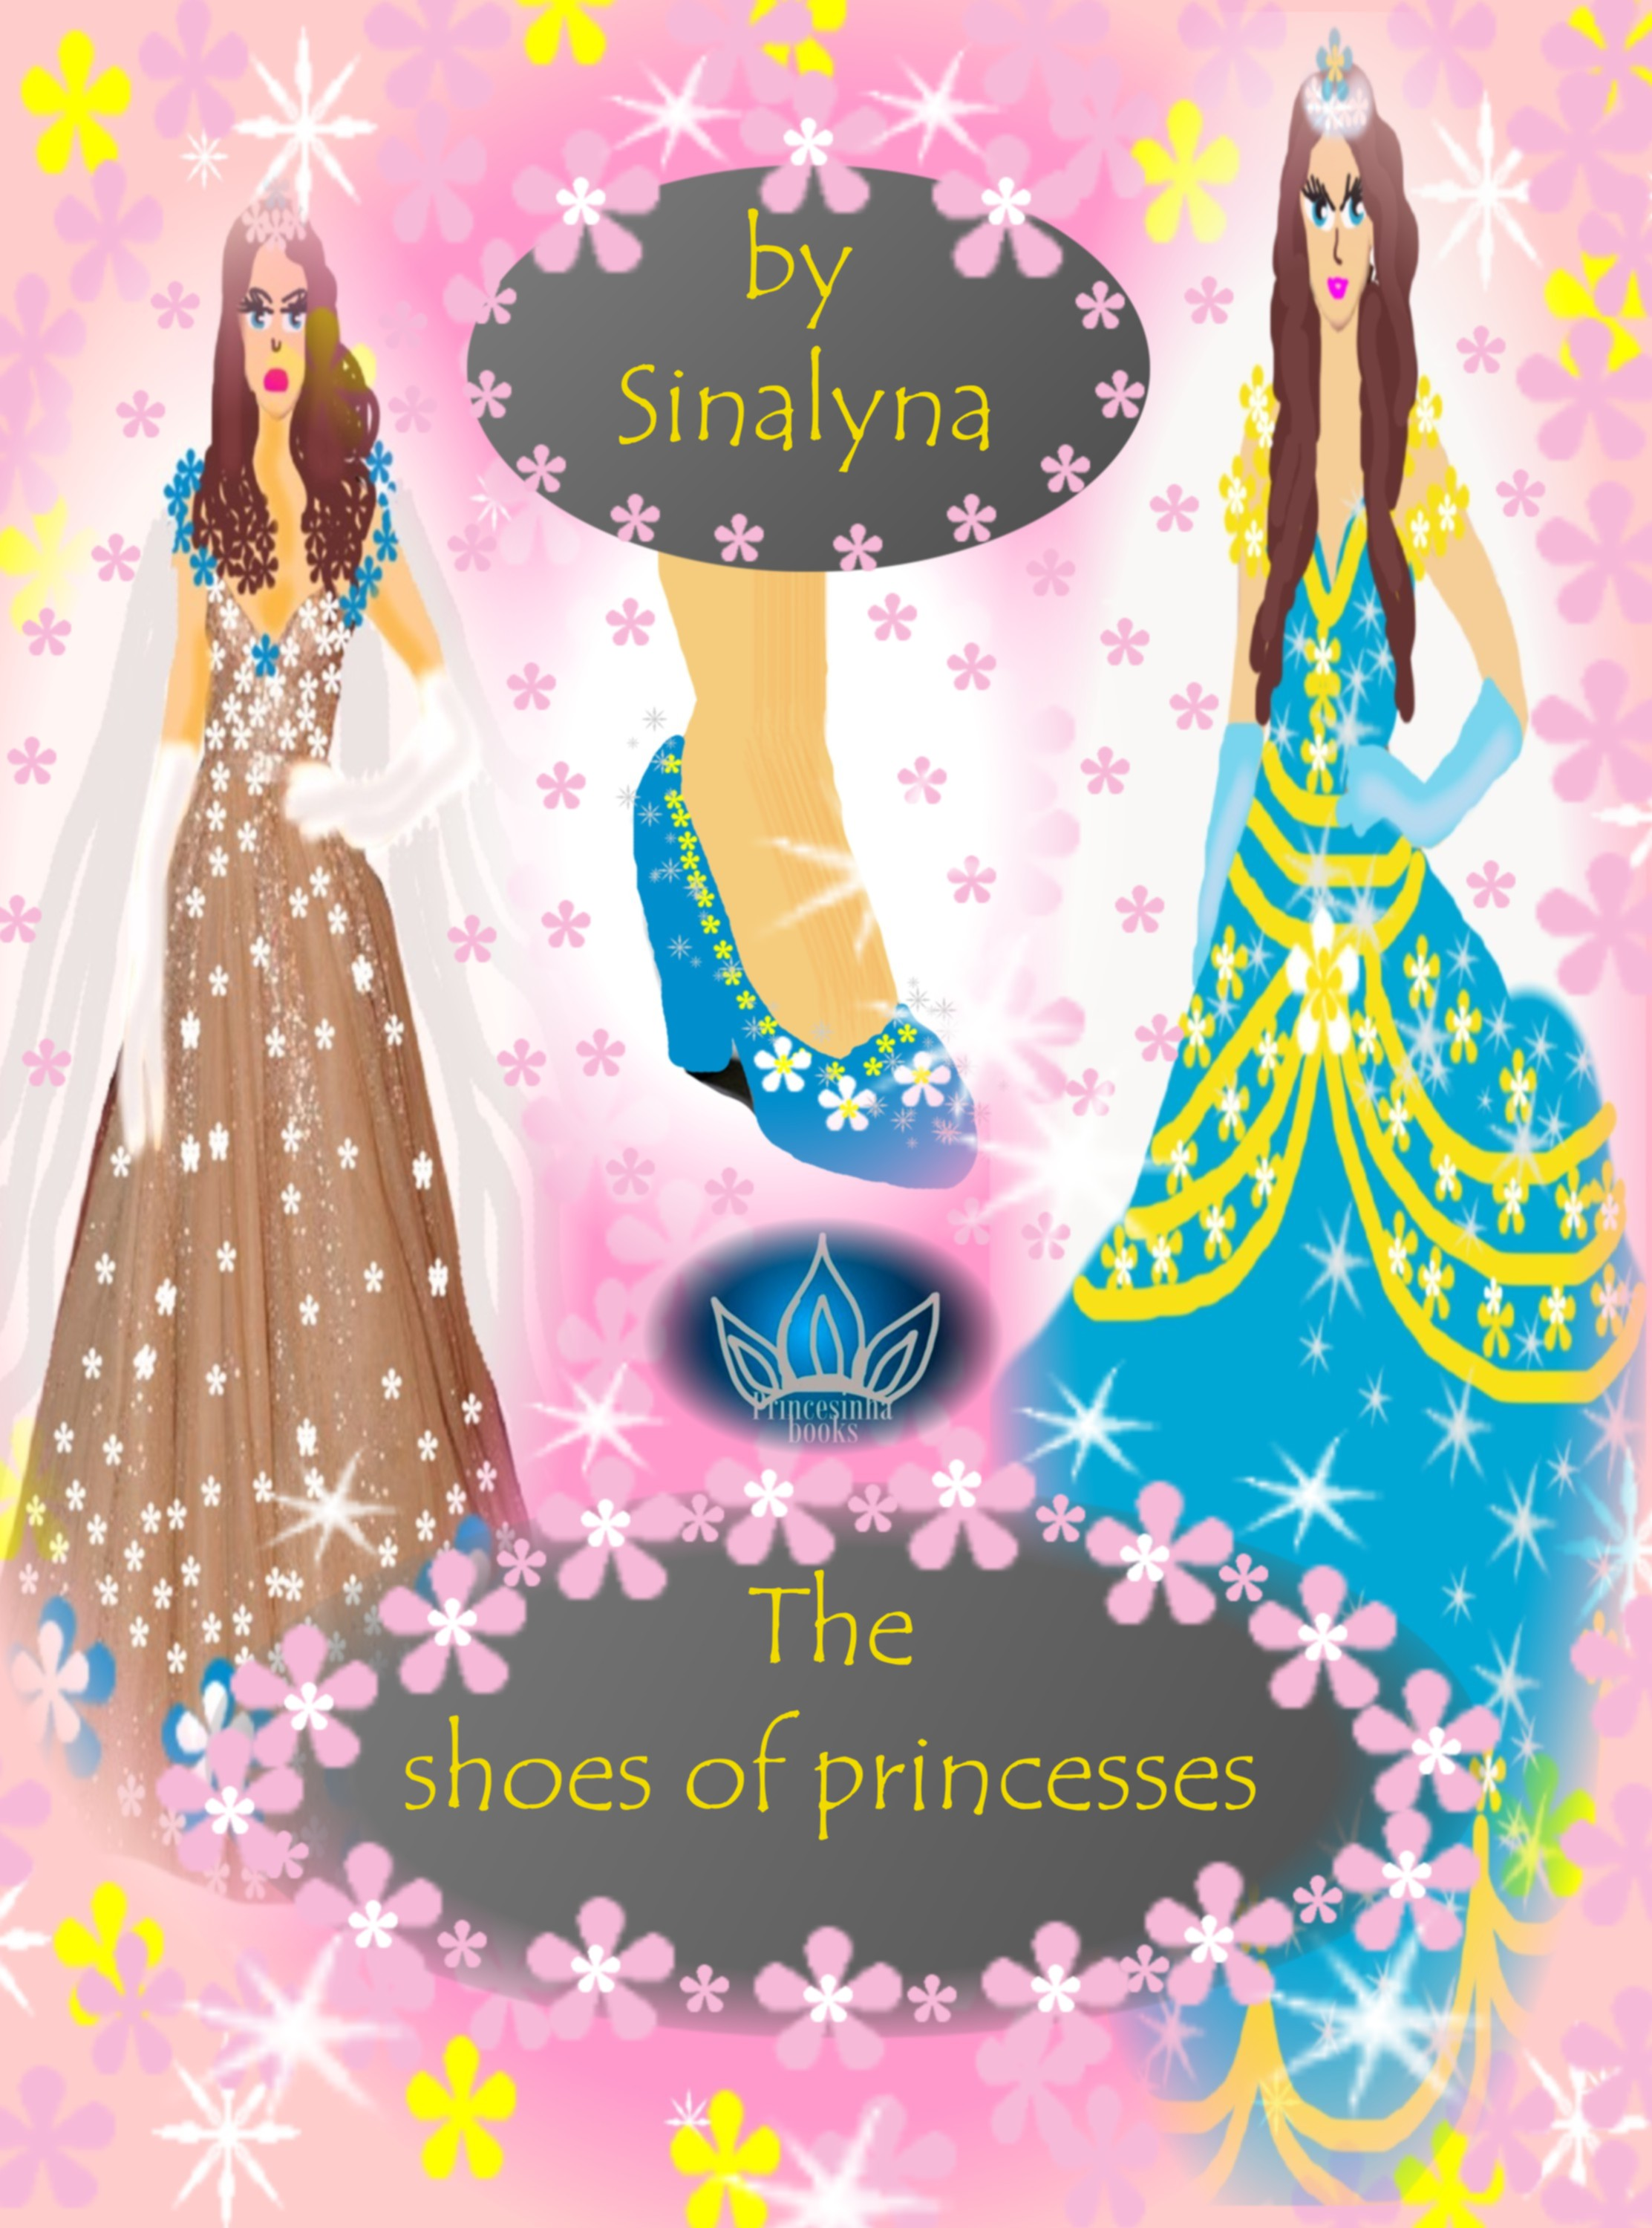 The shoes of princesses